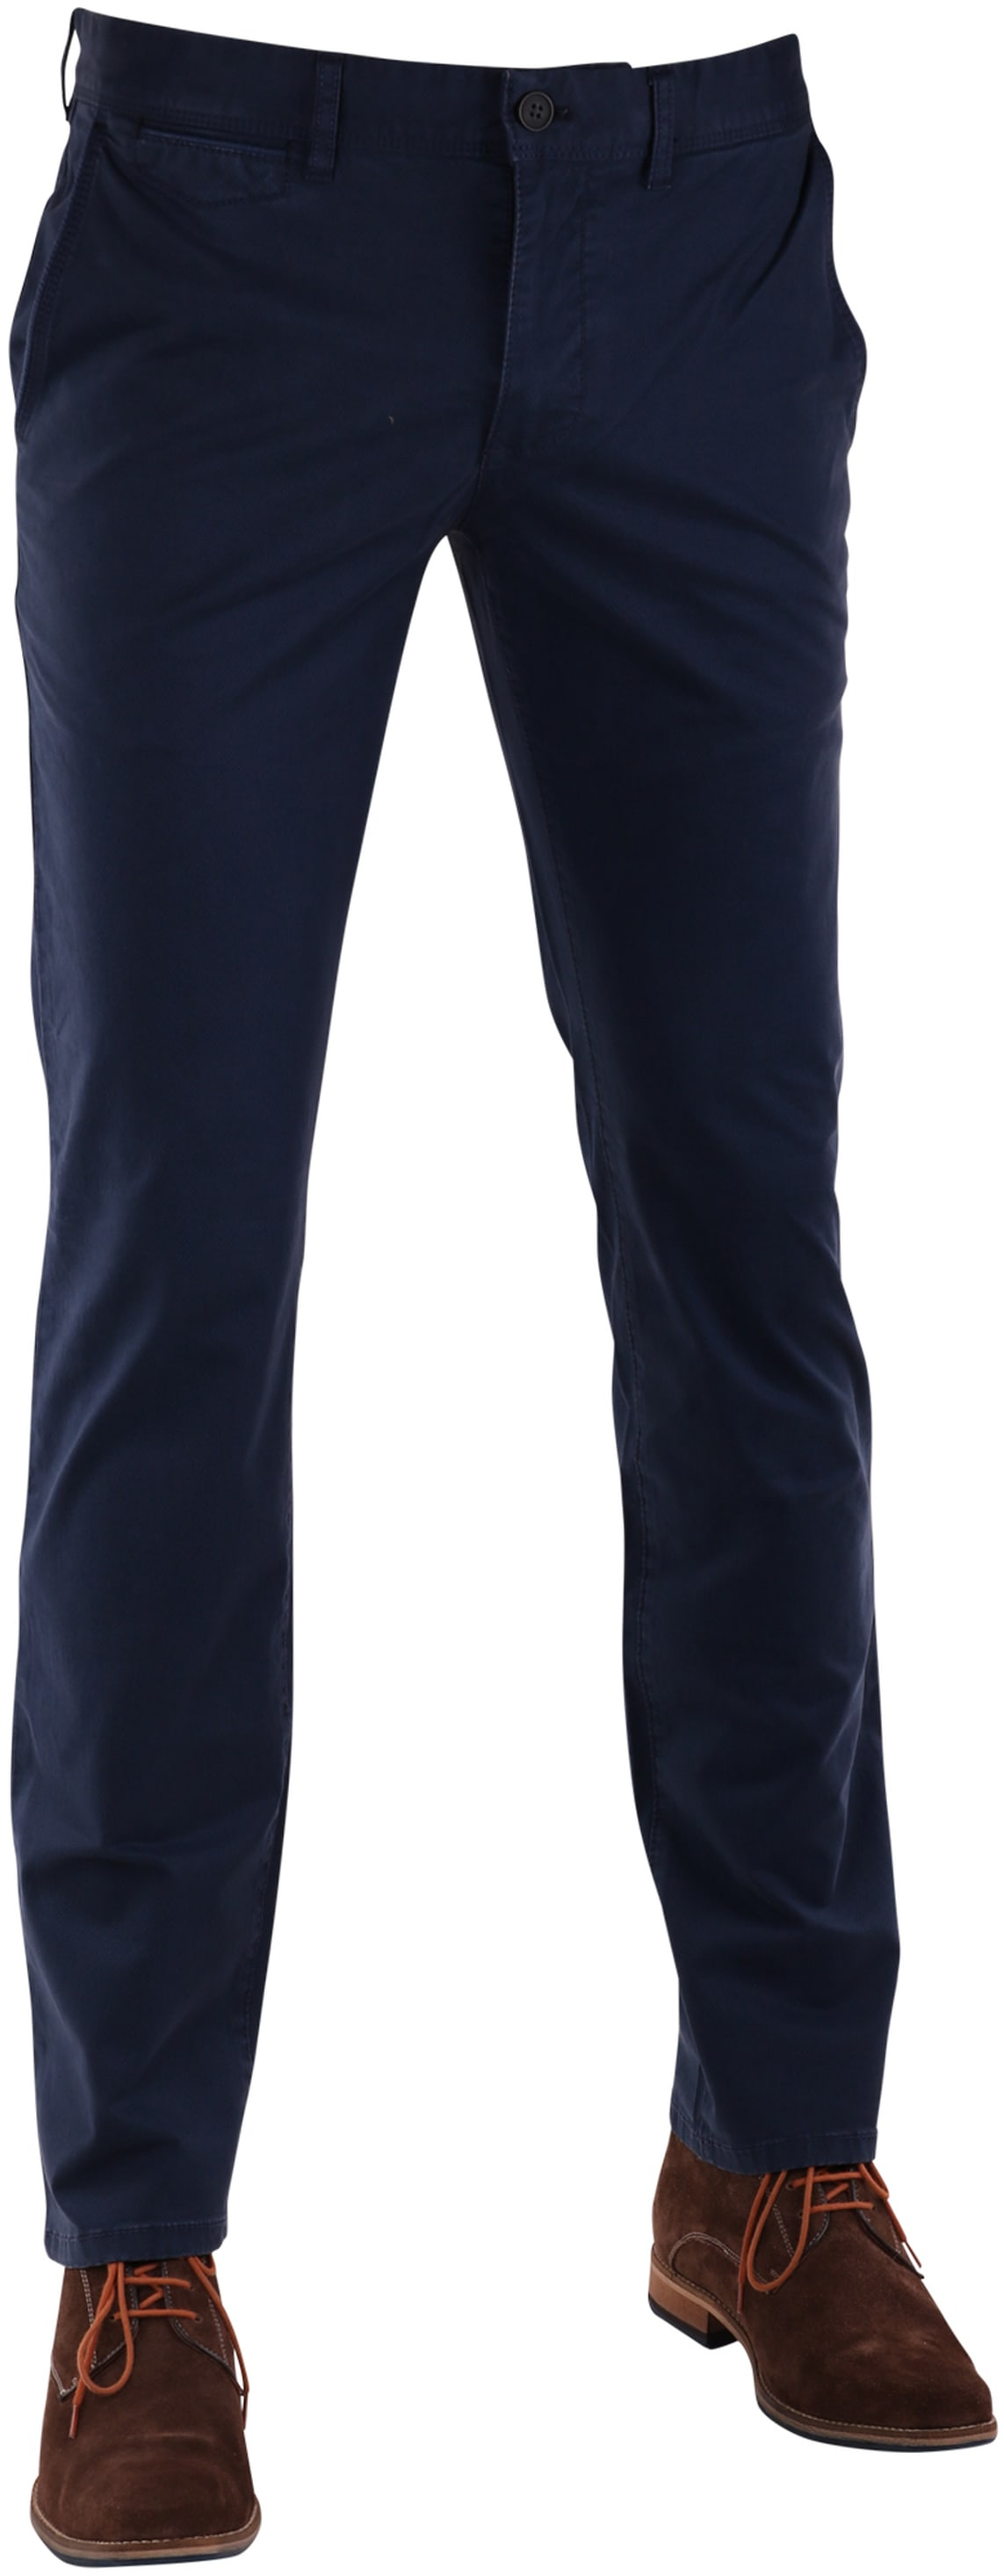 Suitable Chino Broek Donkerblauw Print foto 0